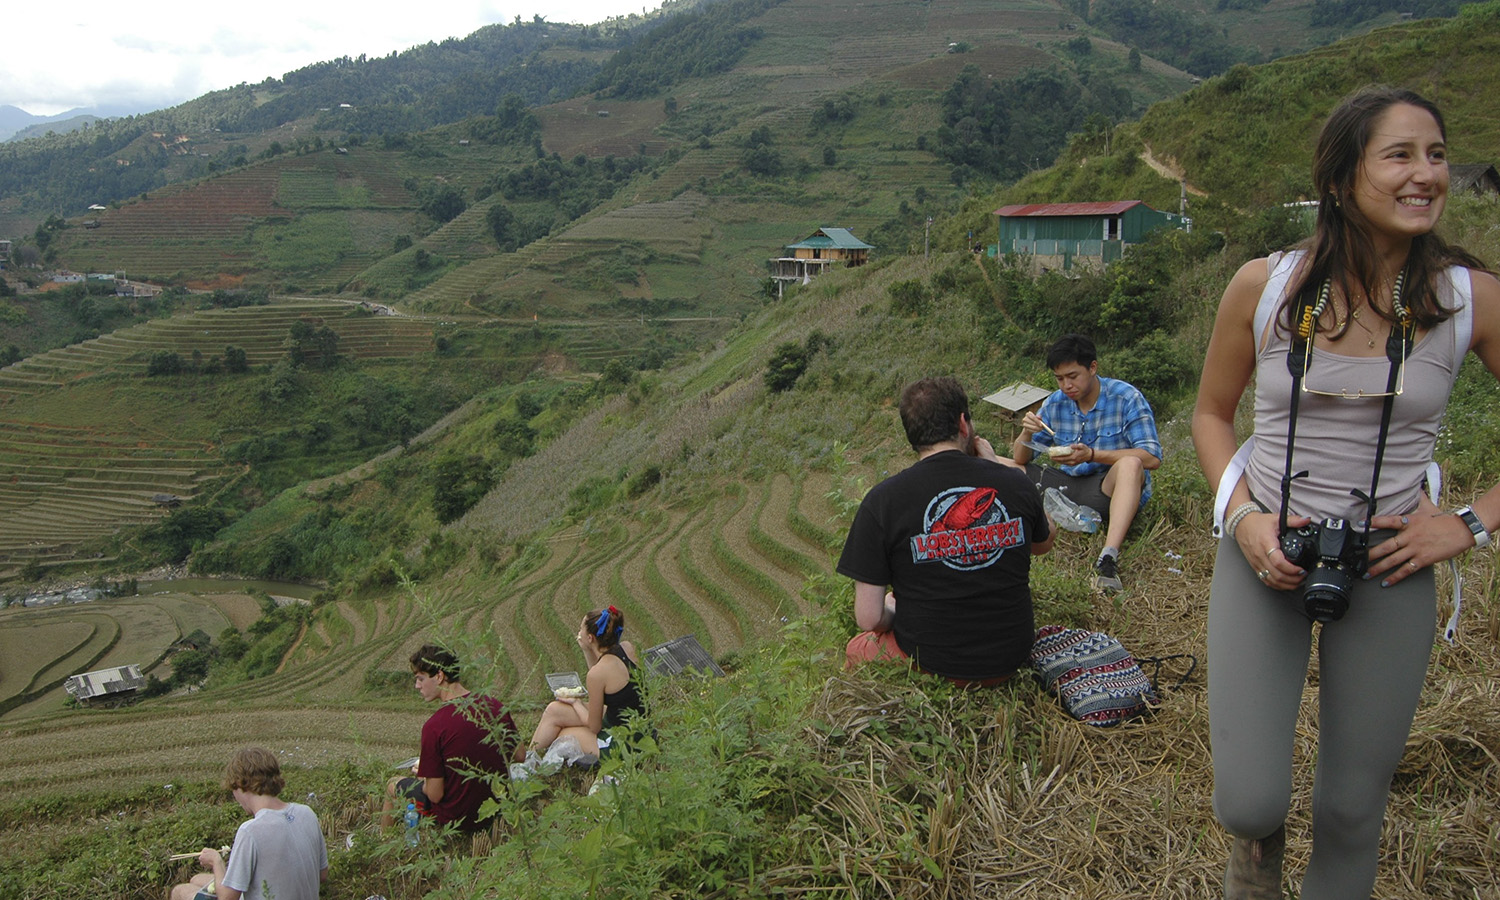 Alyssa Cupano â21 captures Gianna DeVita â21 (right) and fellow students as they take a break while hiking the mountains of Sapa in Vietnam.